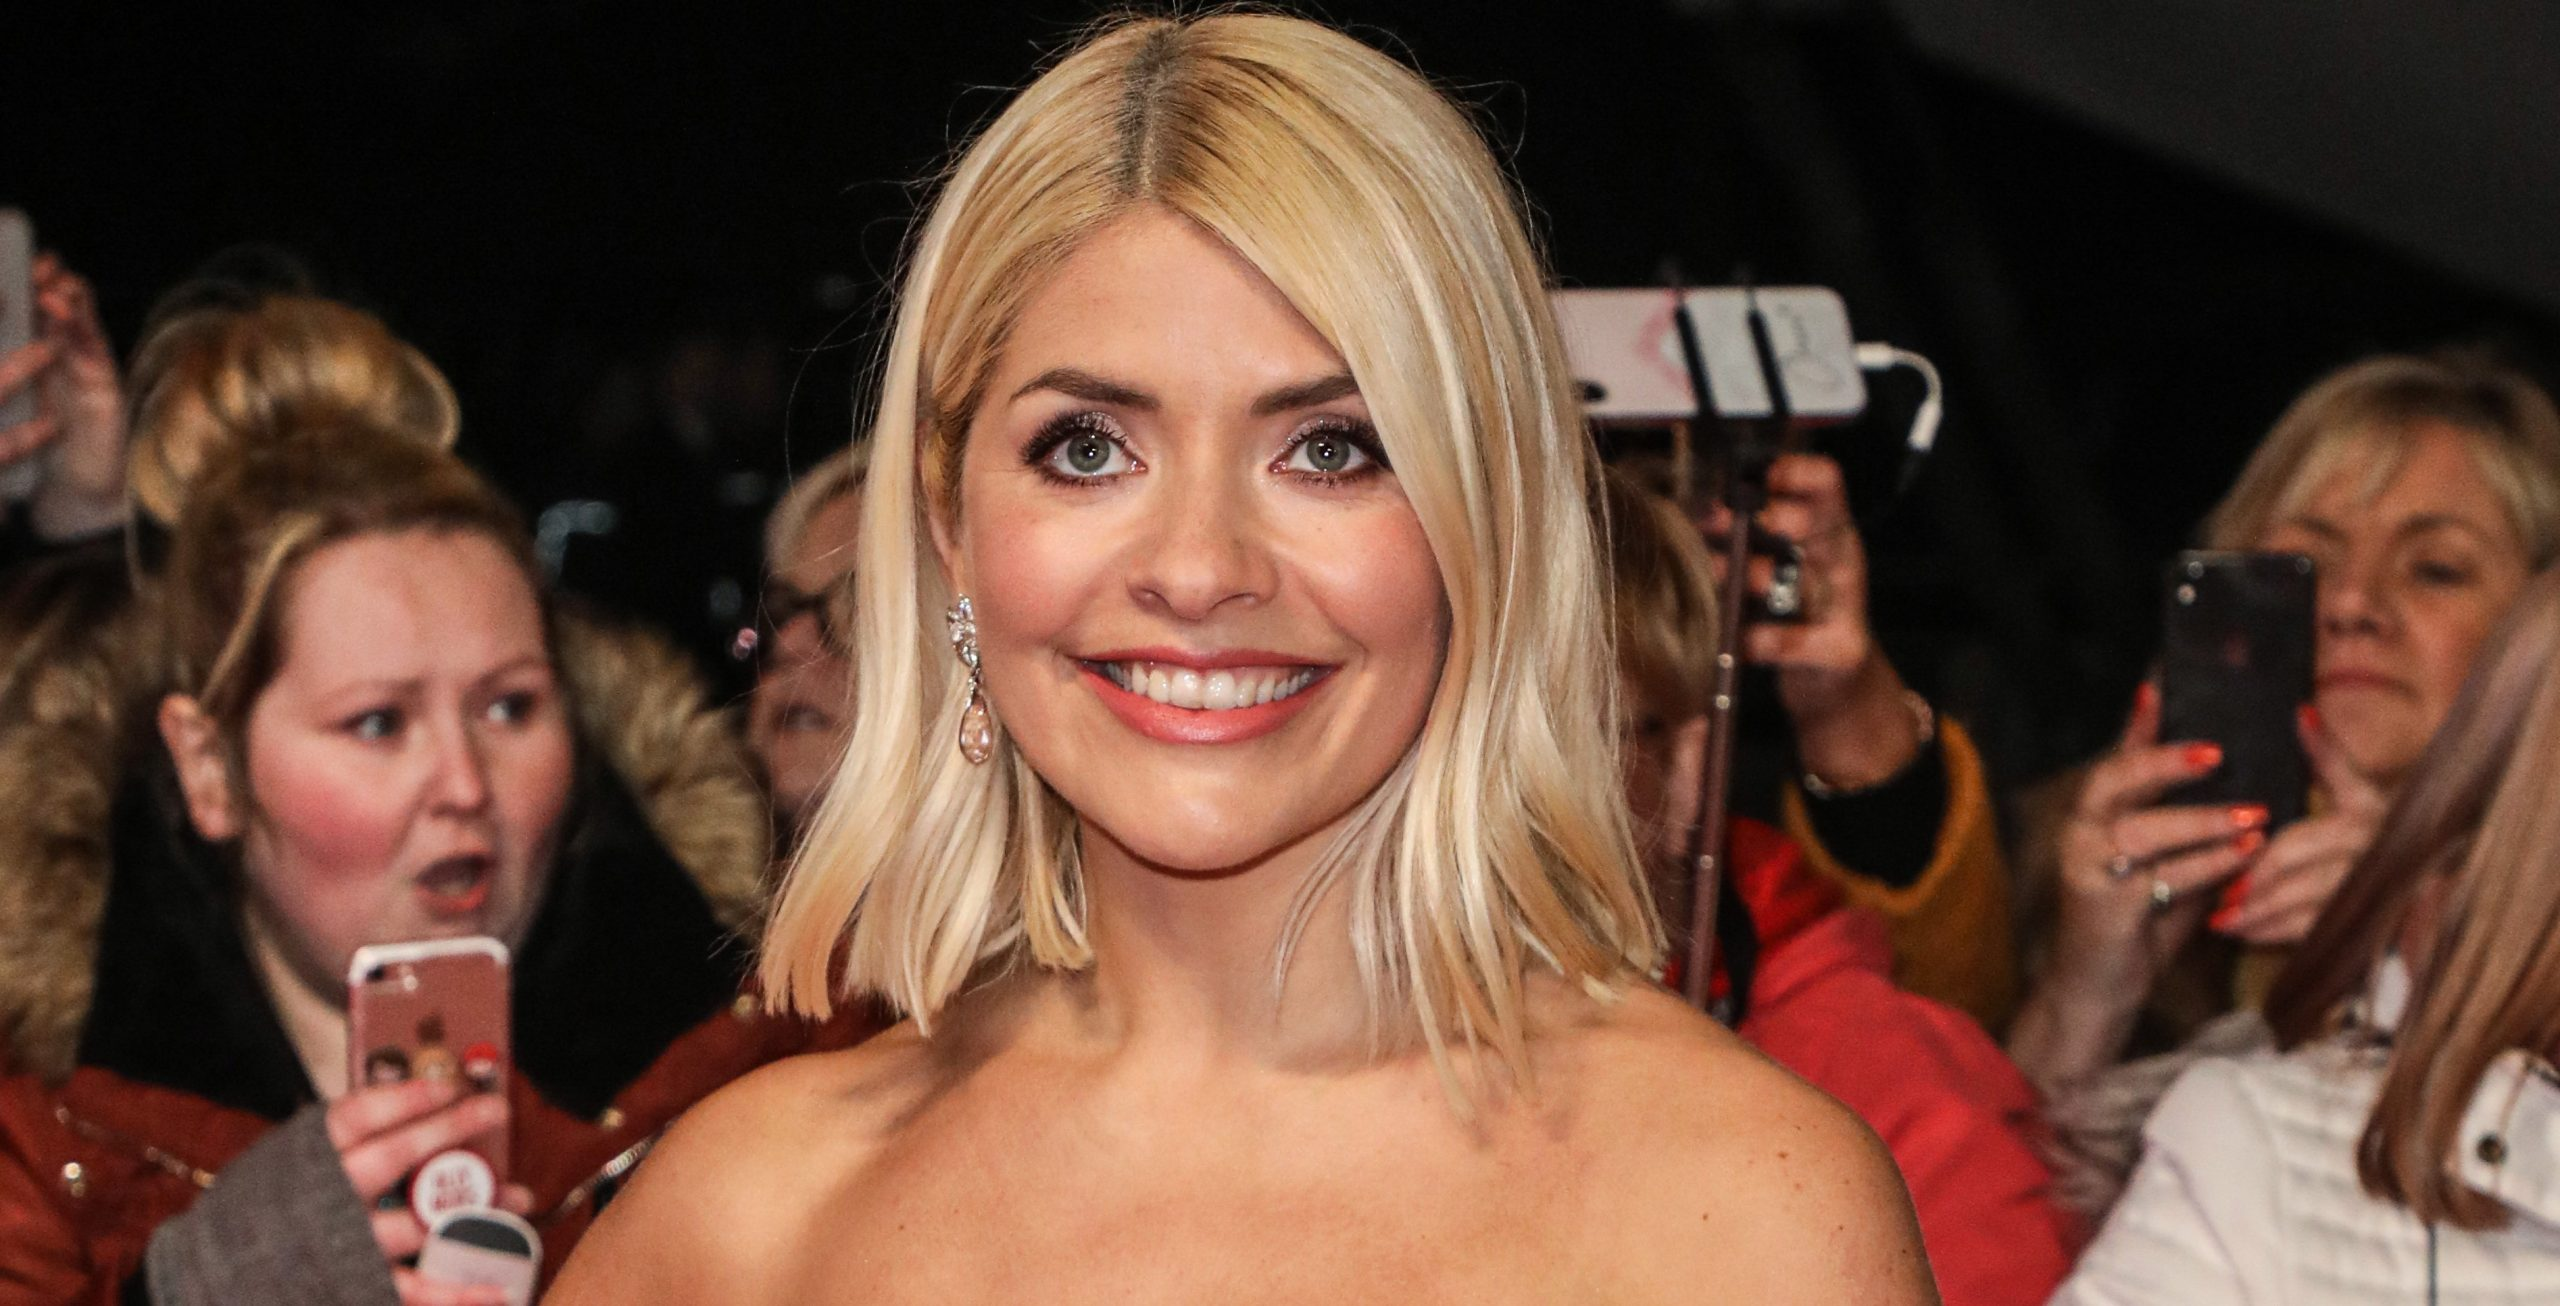 Holly Willoughby divides fans with choice of shoes in Valentine's outfit photo